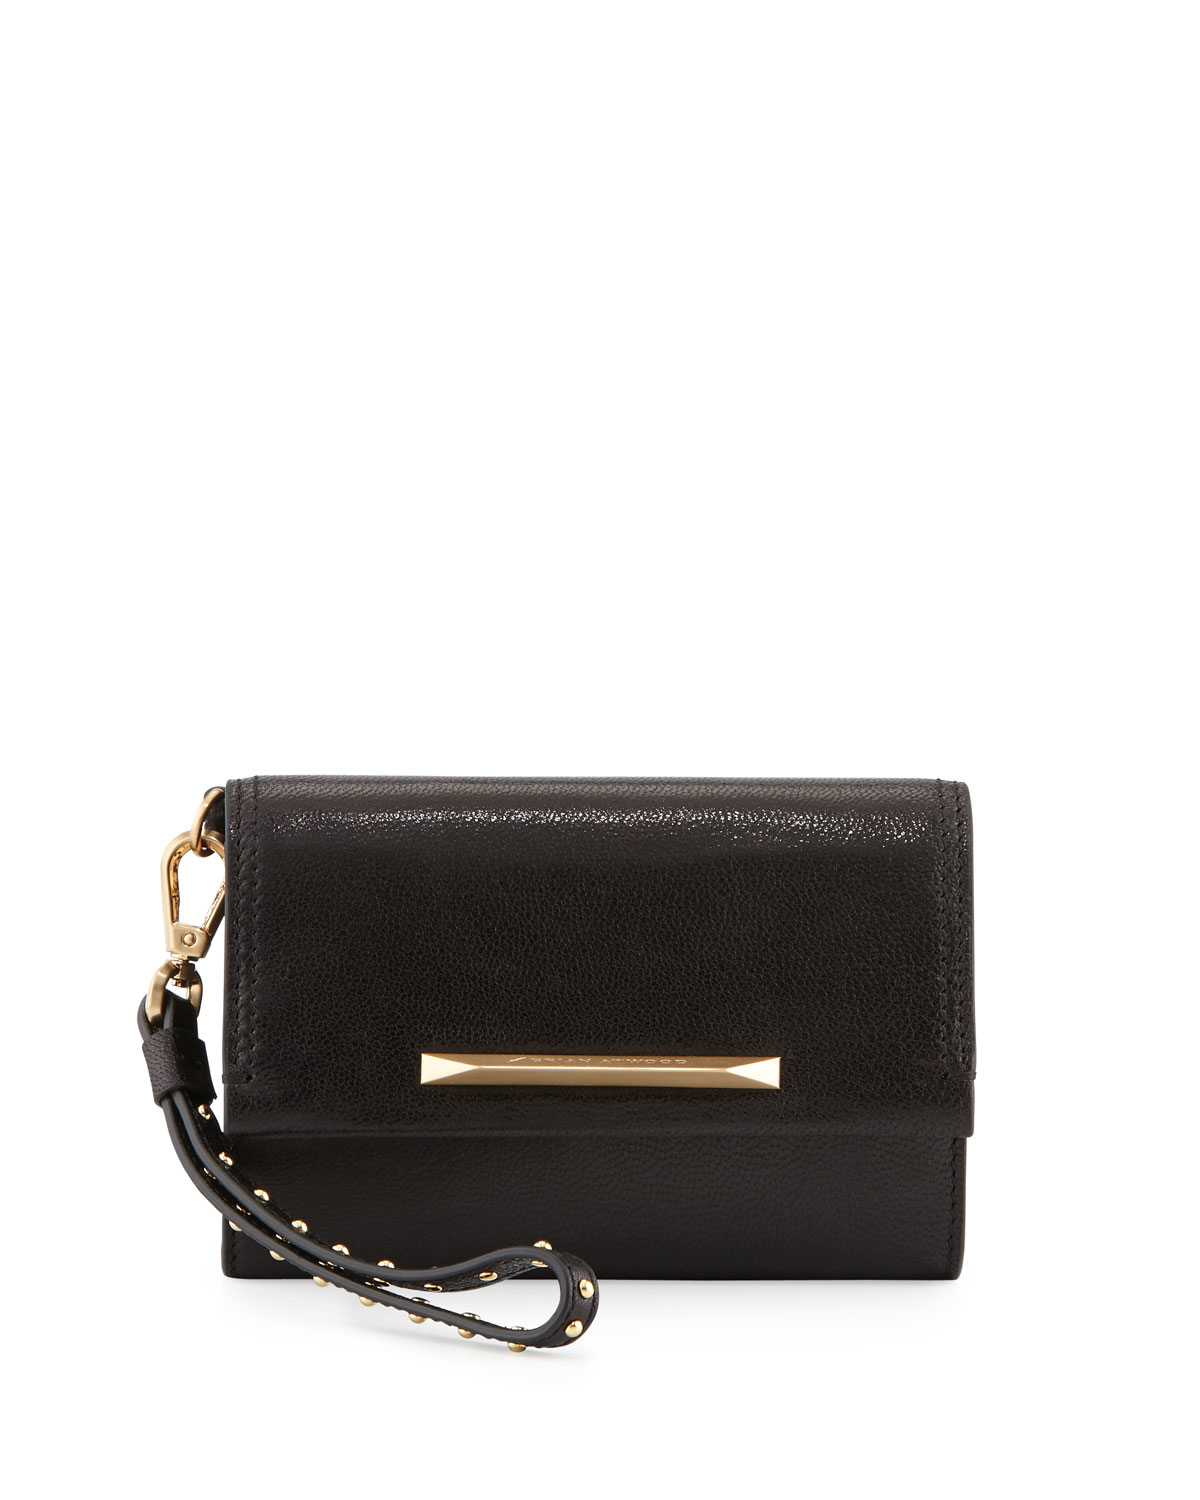 Tippy Leather Flap Wristlet Clutch Bag, Black   B Brian Atwood